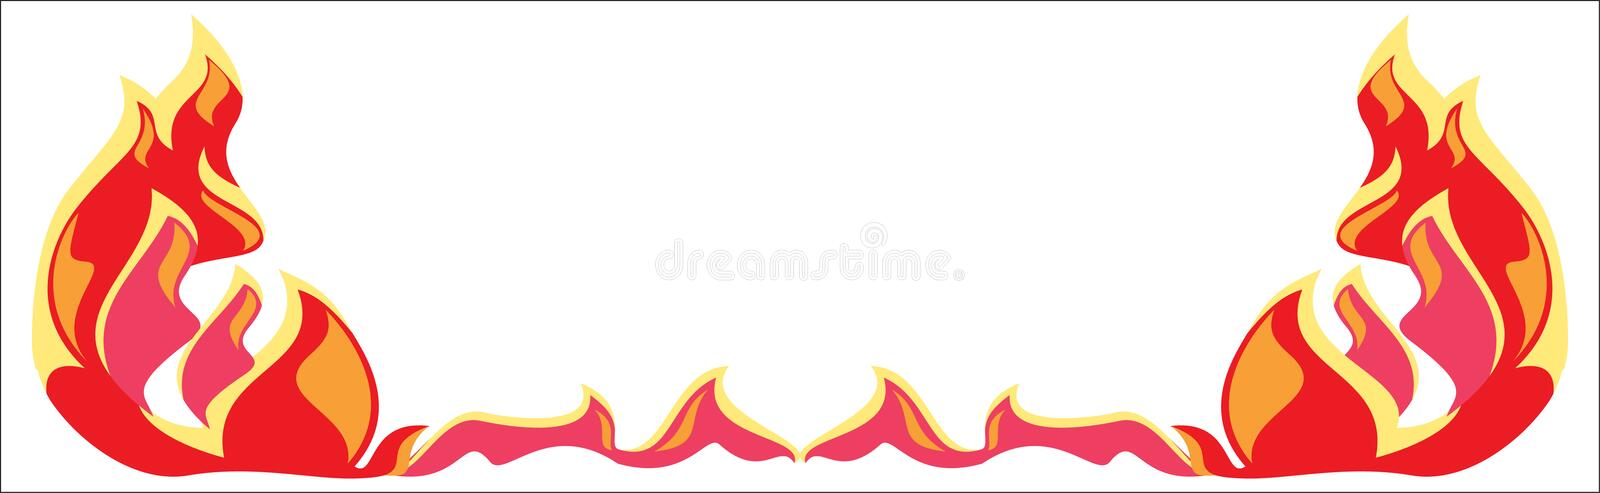 Fire border. Cute image for your design royalty free illustration